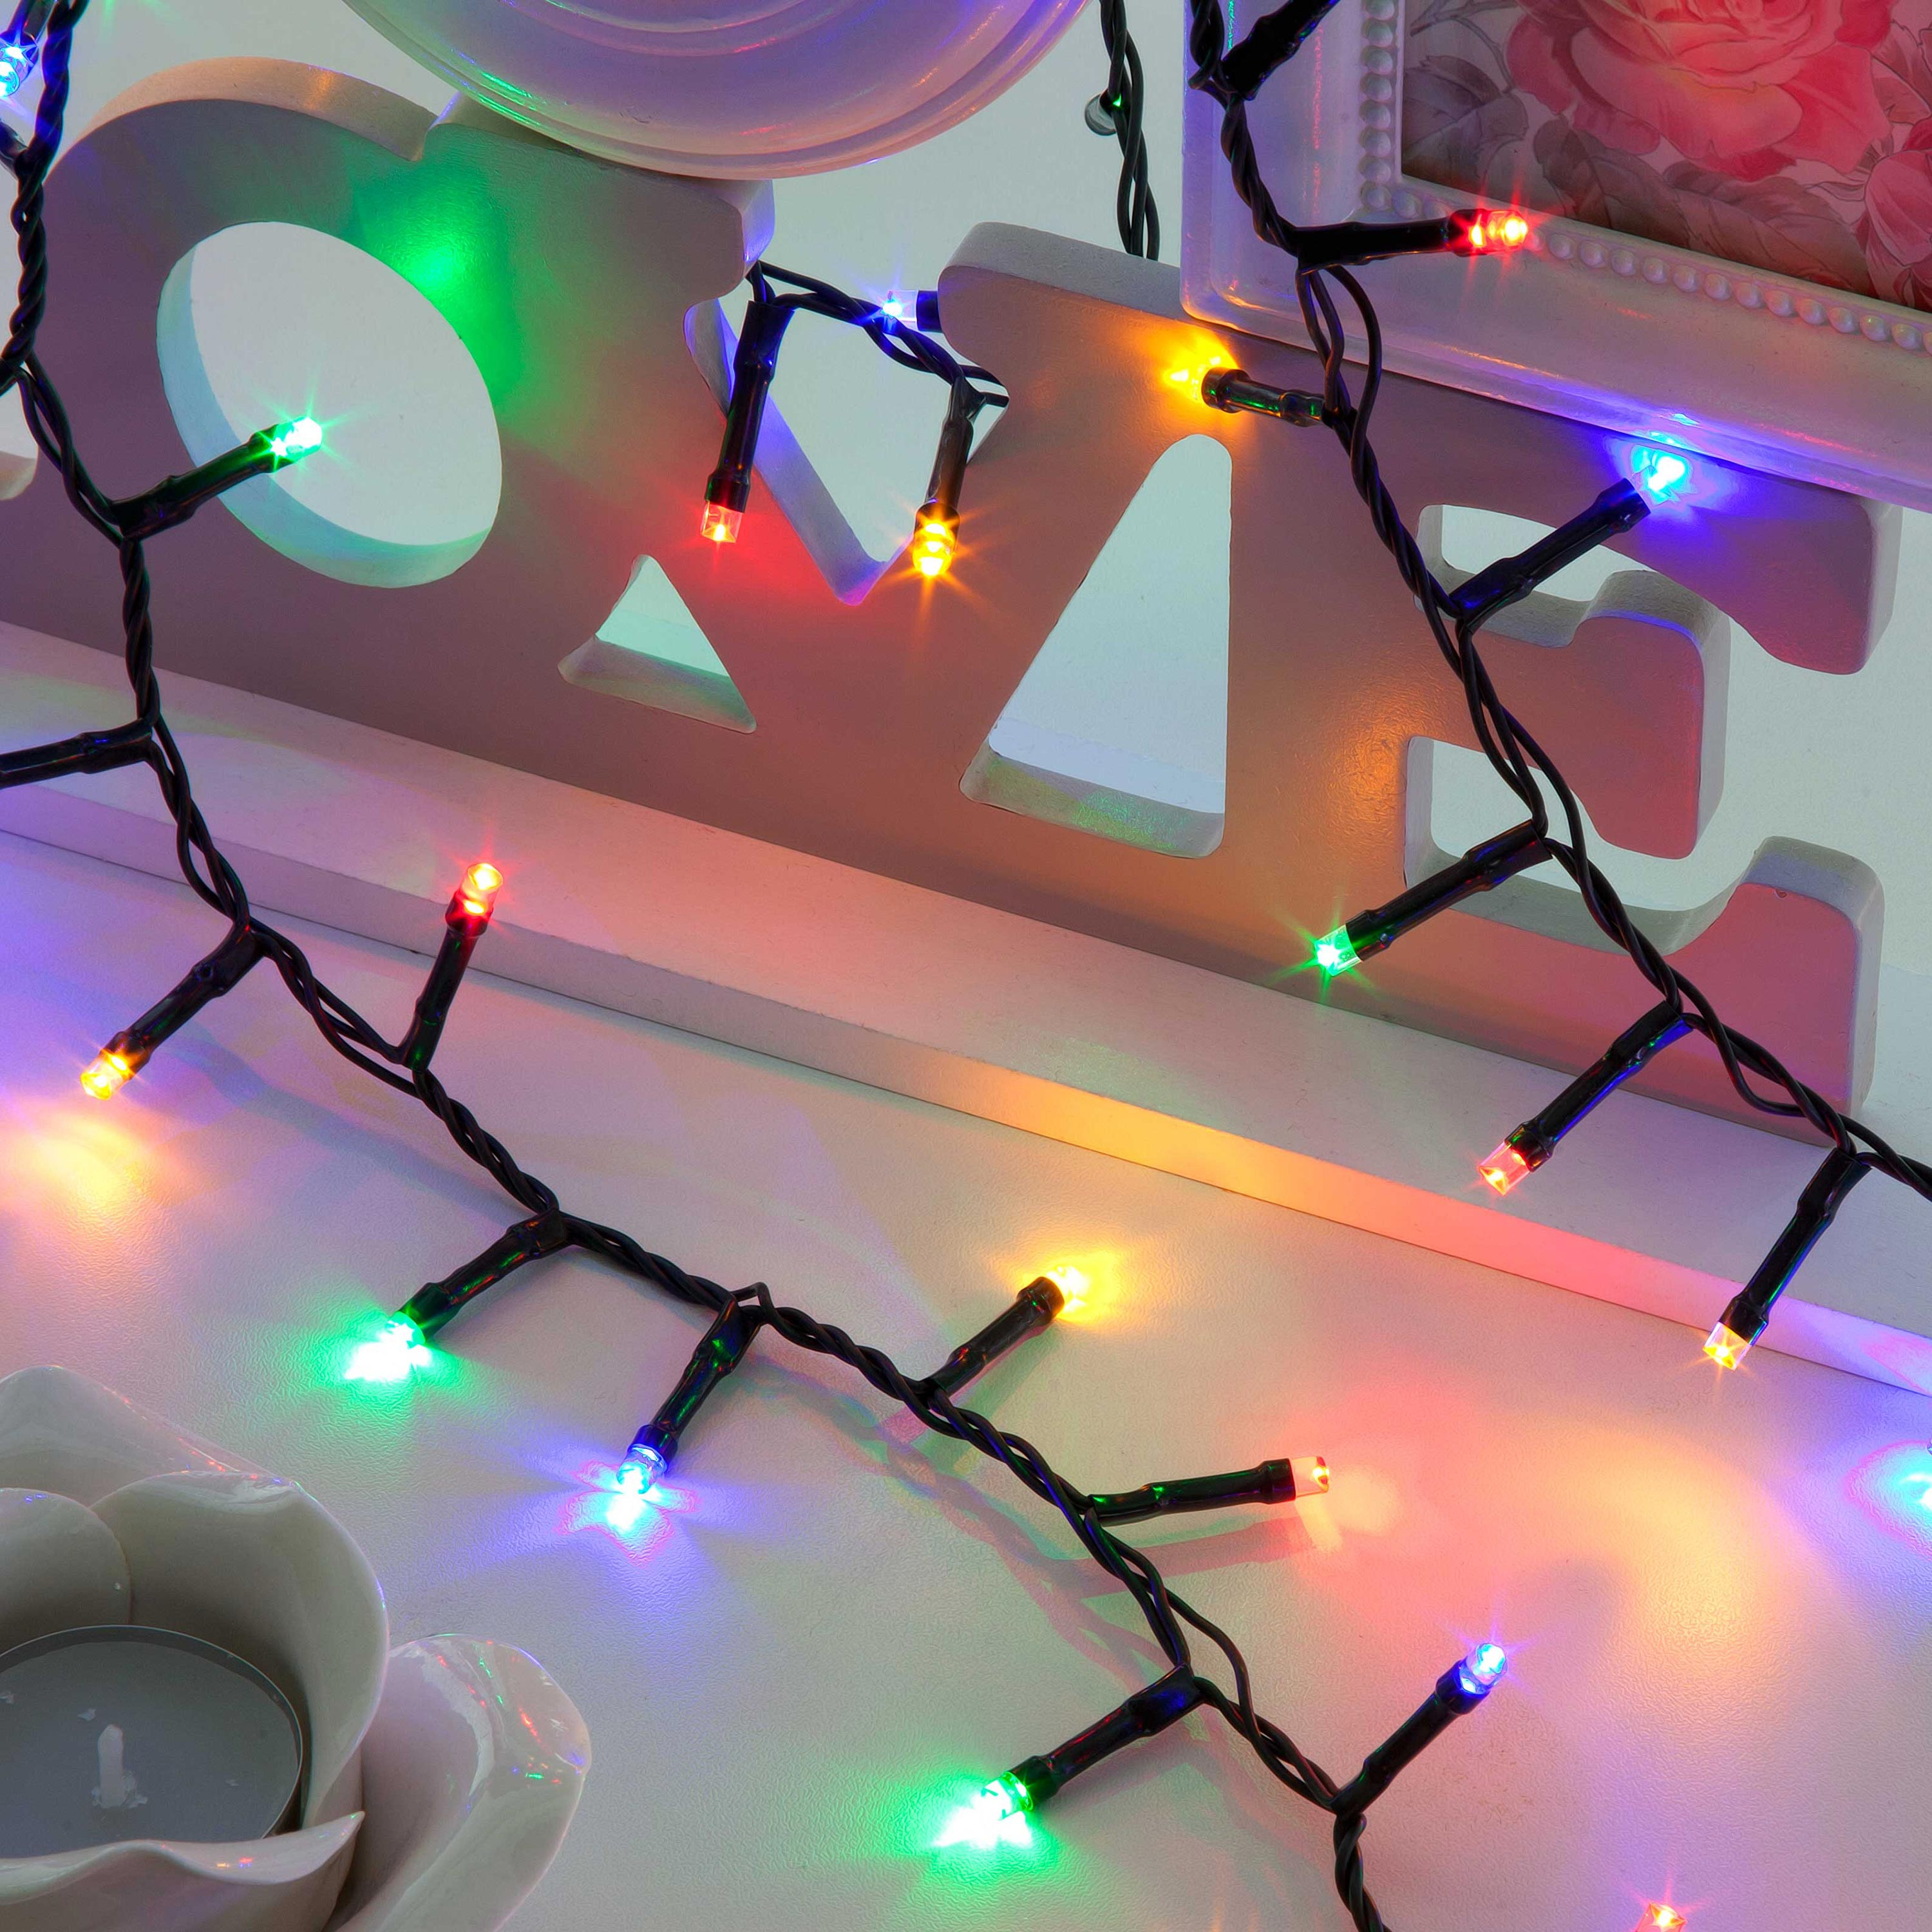 Christmas Trees and Lights 500 Compact Multi-Coloured LEDs with Multi-Function Controller